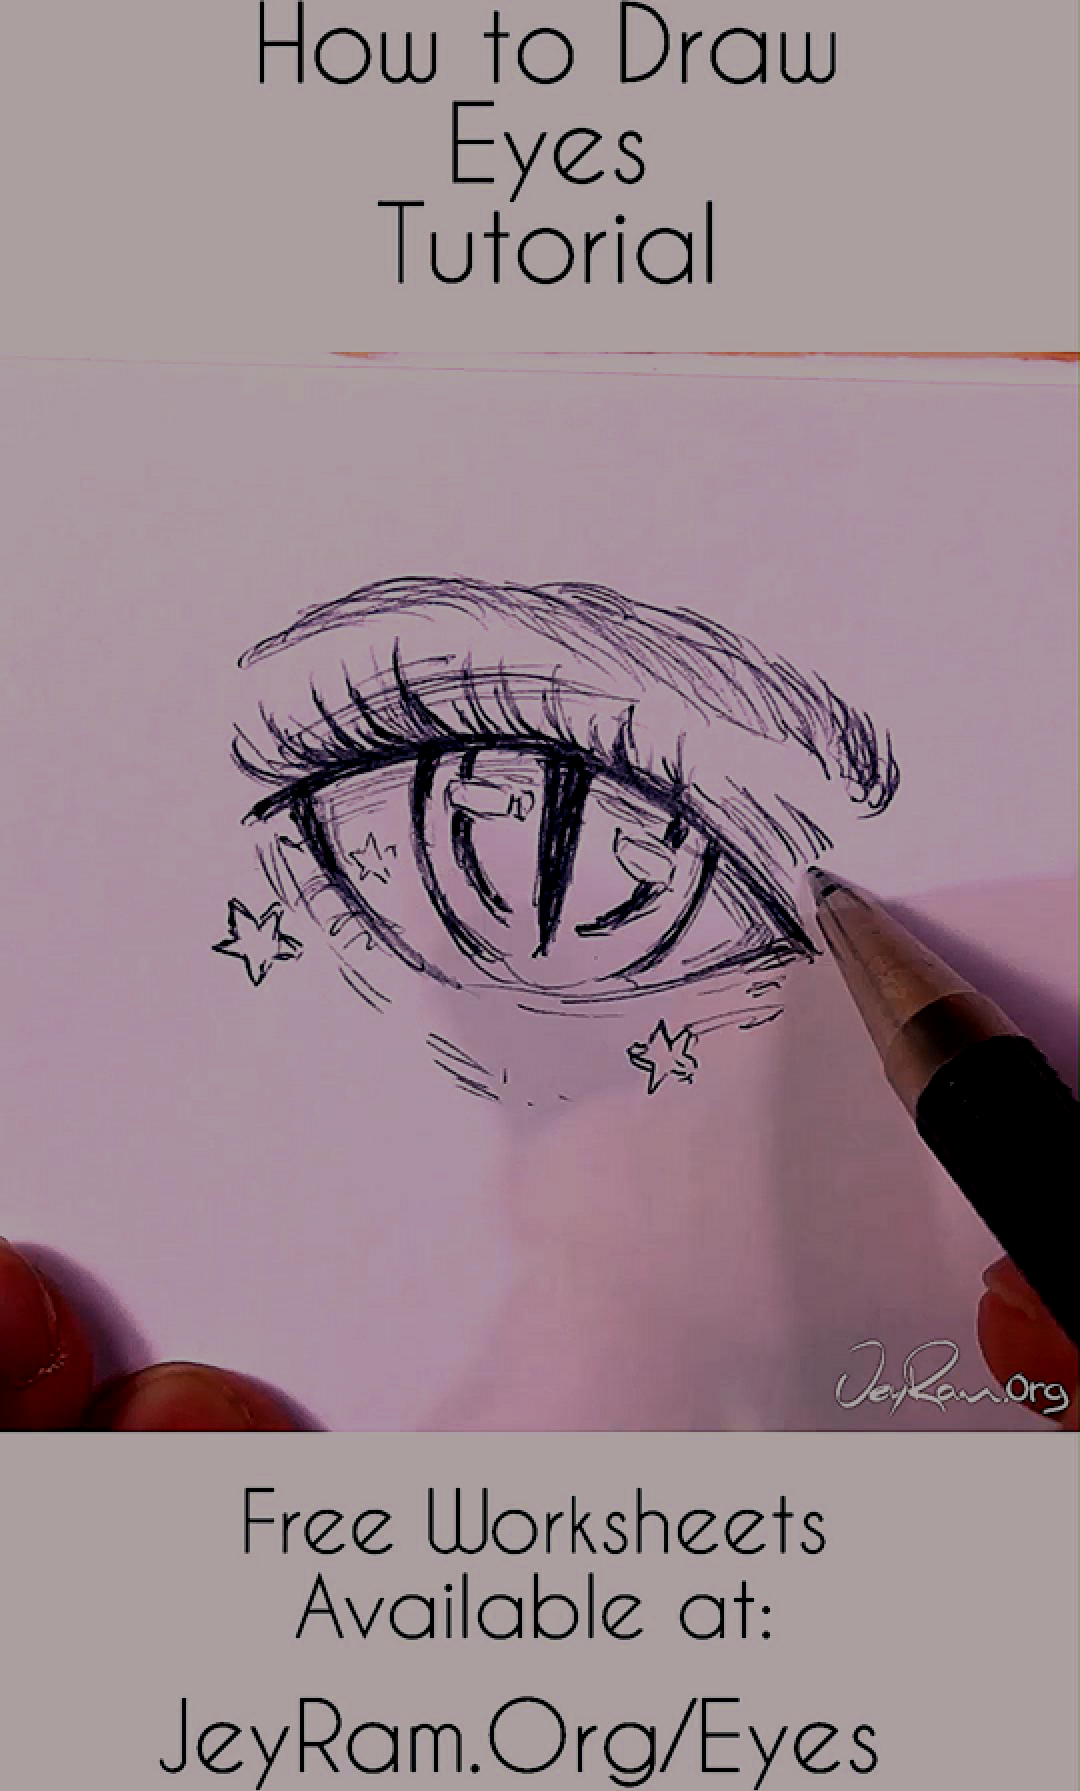 How To Draw Anime Eyes Step By Step For Beginners Free Printable Pdf By Jeyram In 2020 How To Draw Anime Eyes Anime Eyes Anime Drawings